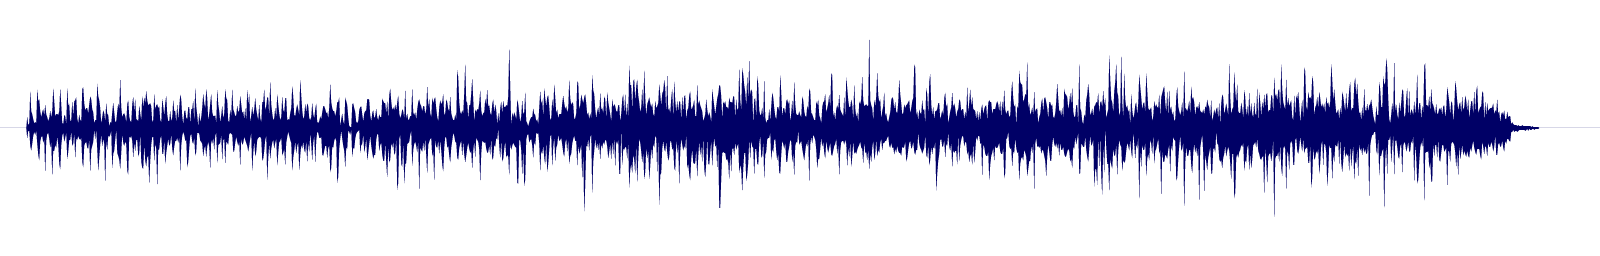 waveform of track #109749